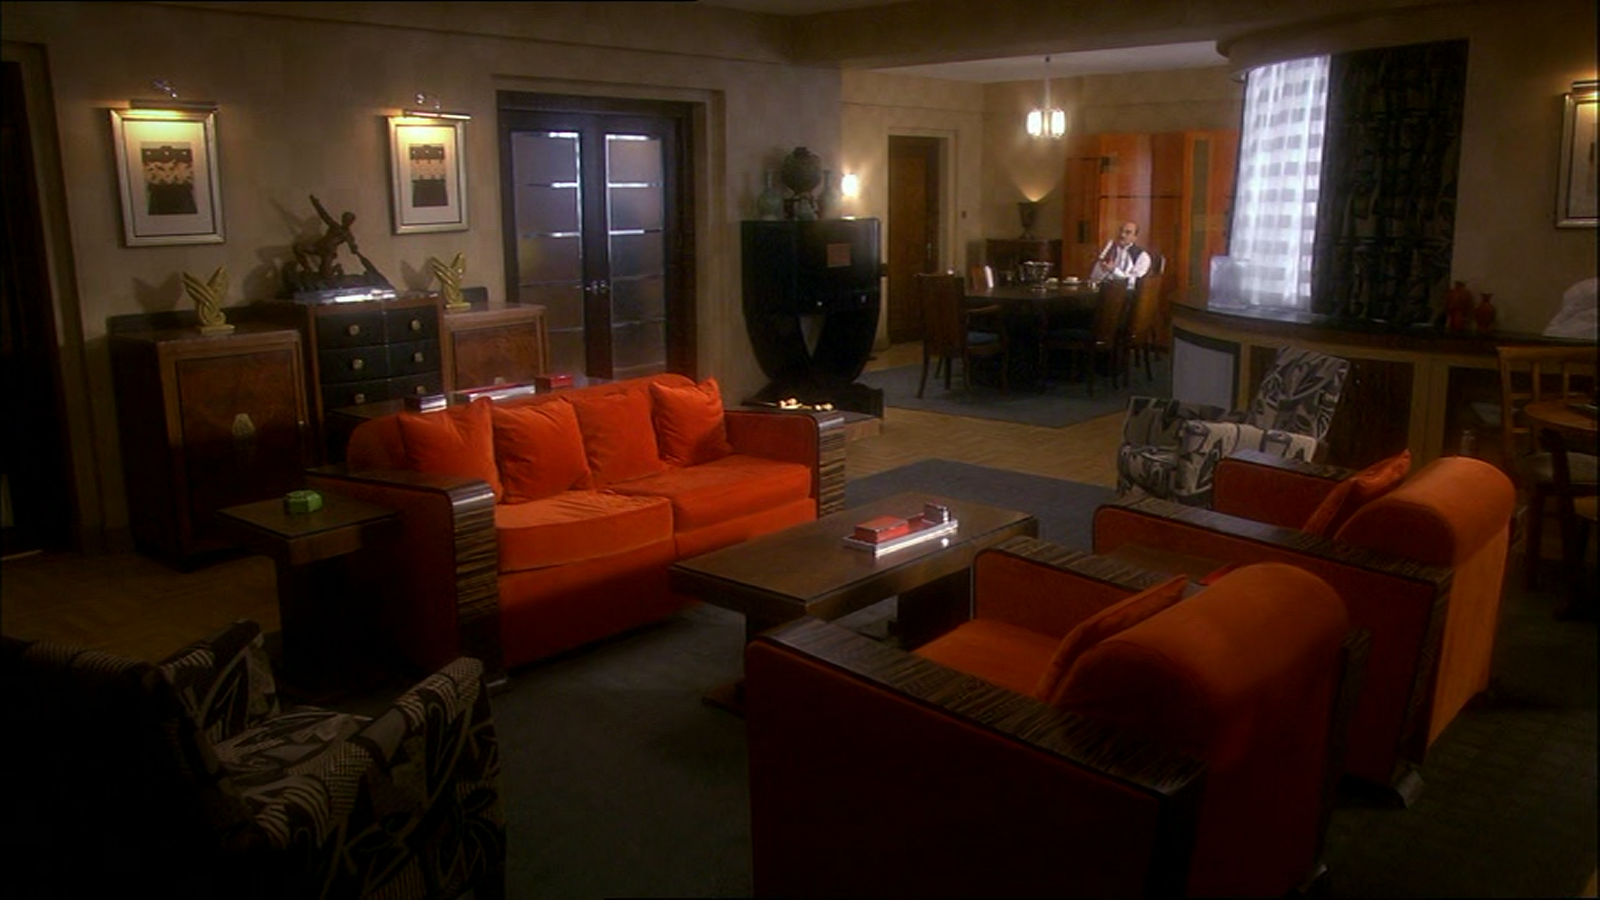 Home Drawing Room Interiors The Chronology Of Agatha Christie S Poirot Apartment